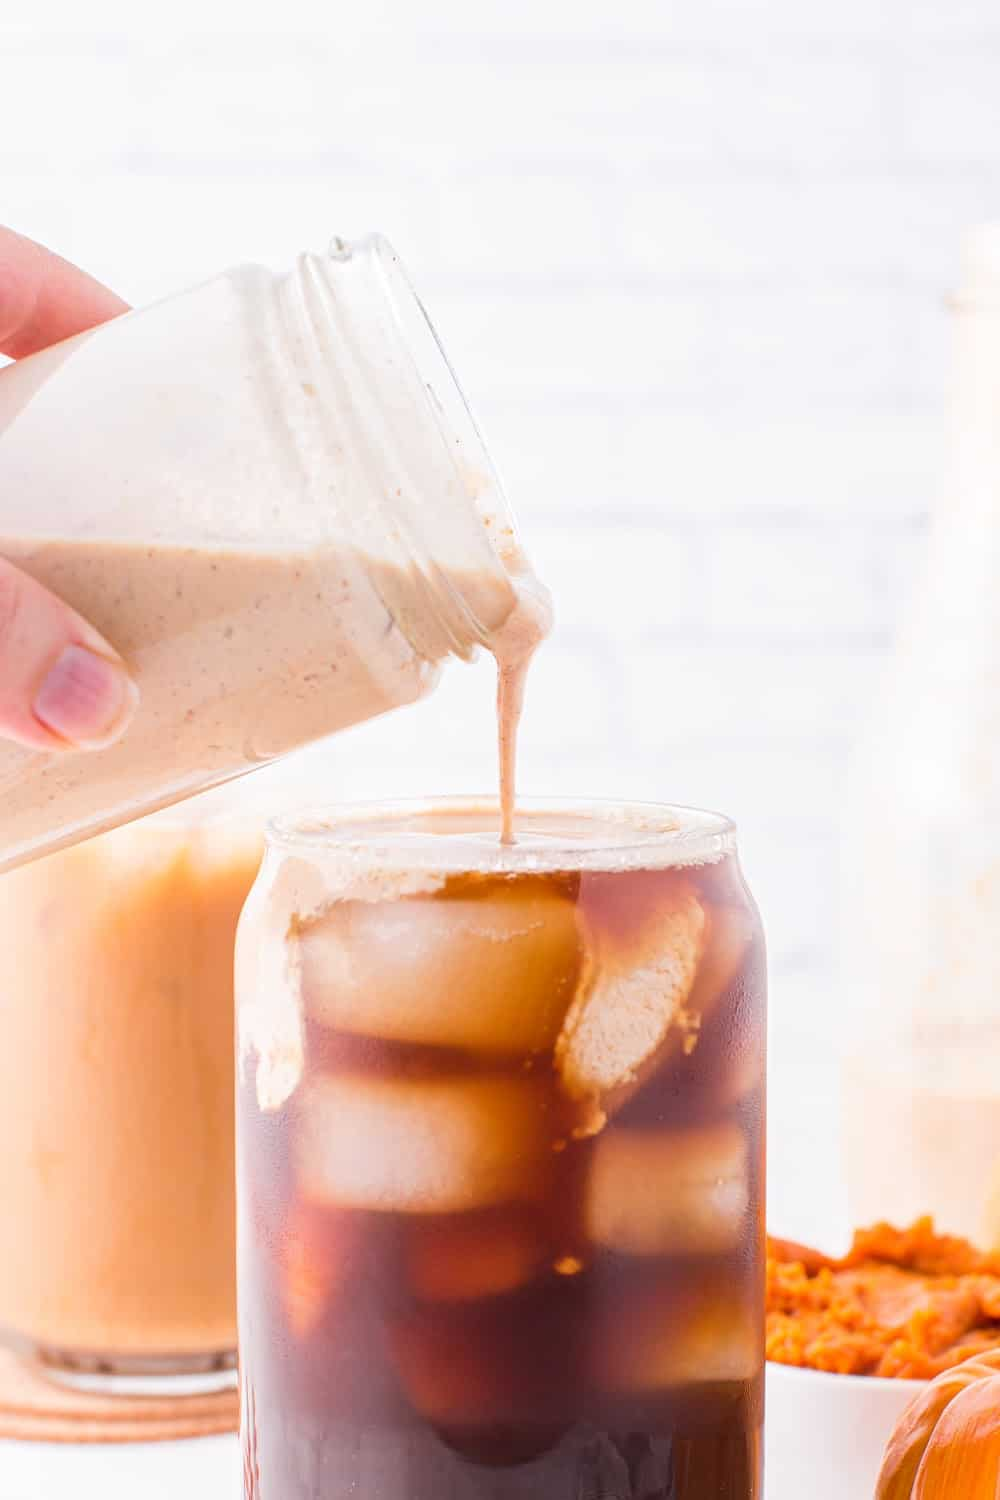 pumpkin spice creamer being poured into iced coffee